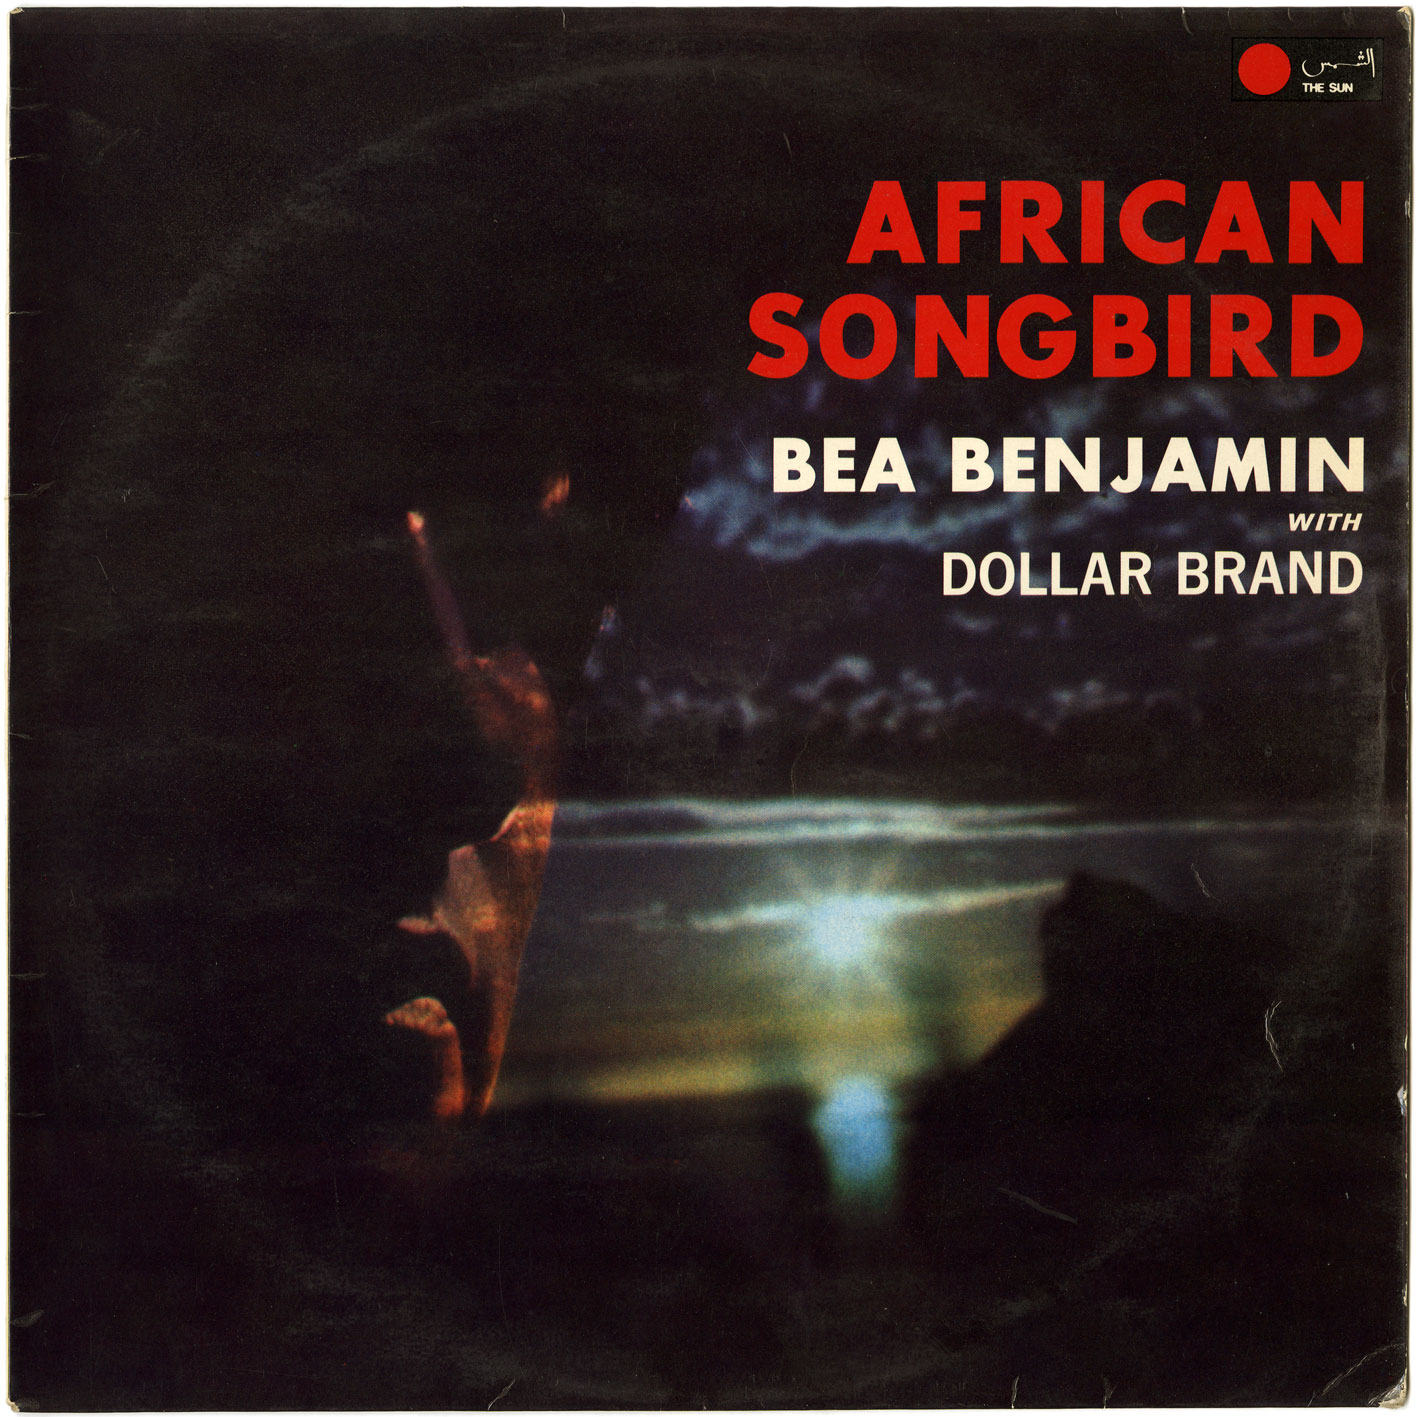 African Songbird